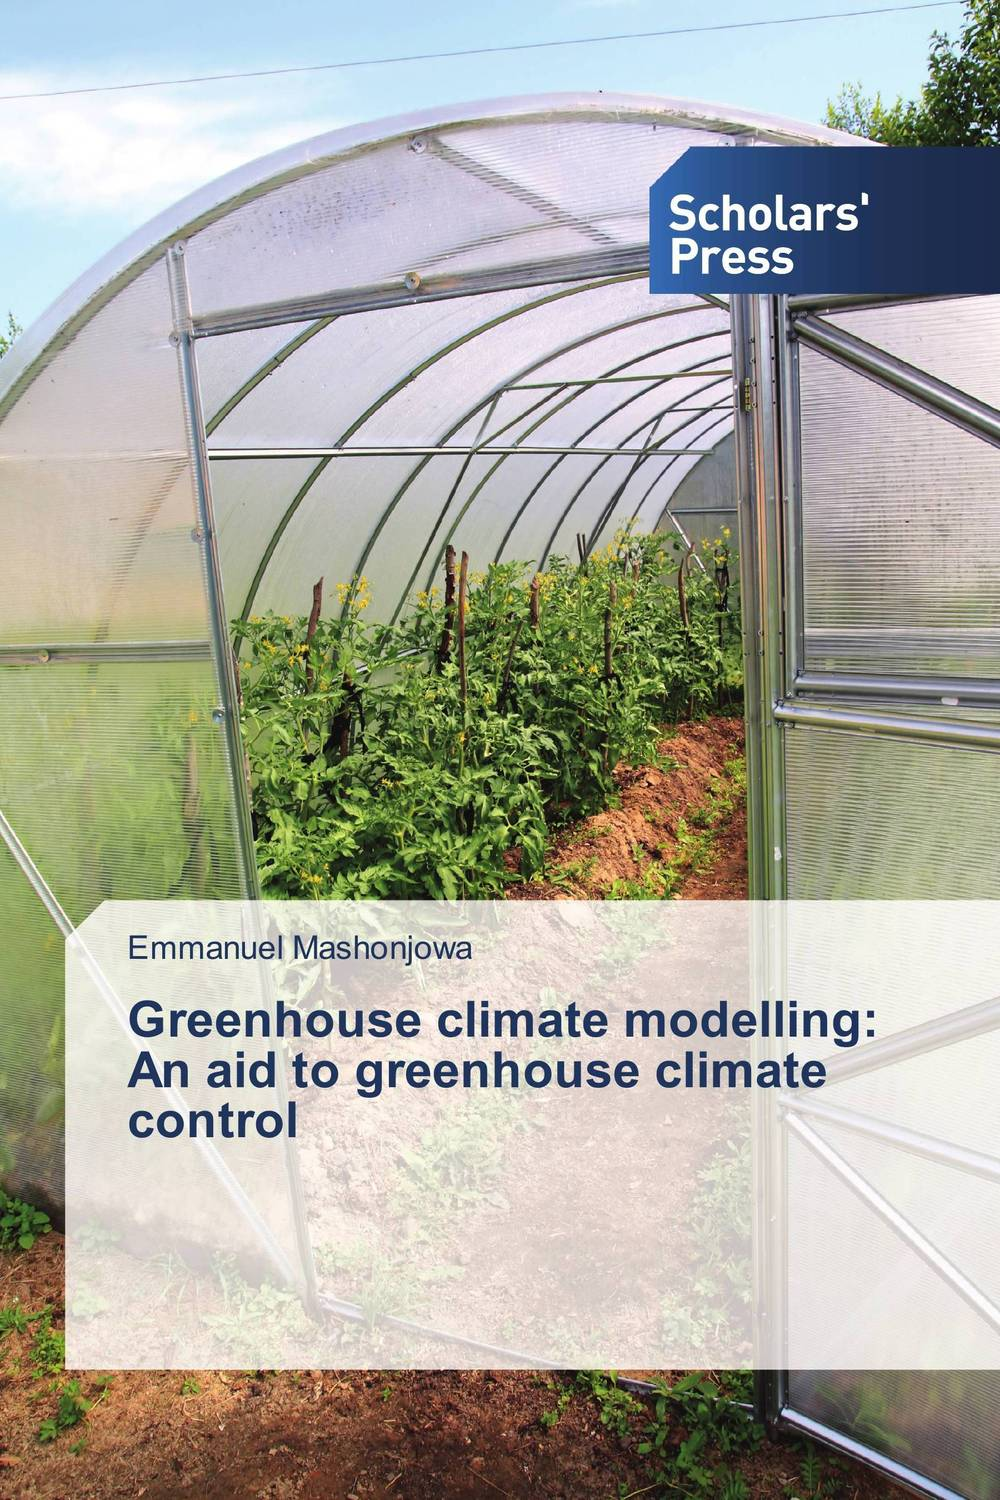 Greenhouse climate modelling: An aid to greenhouse climate control